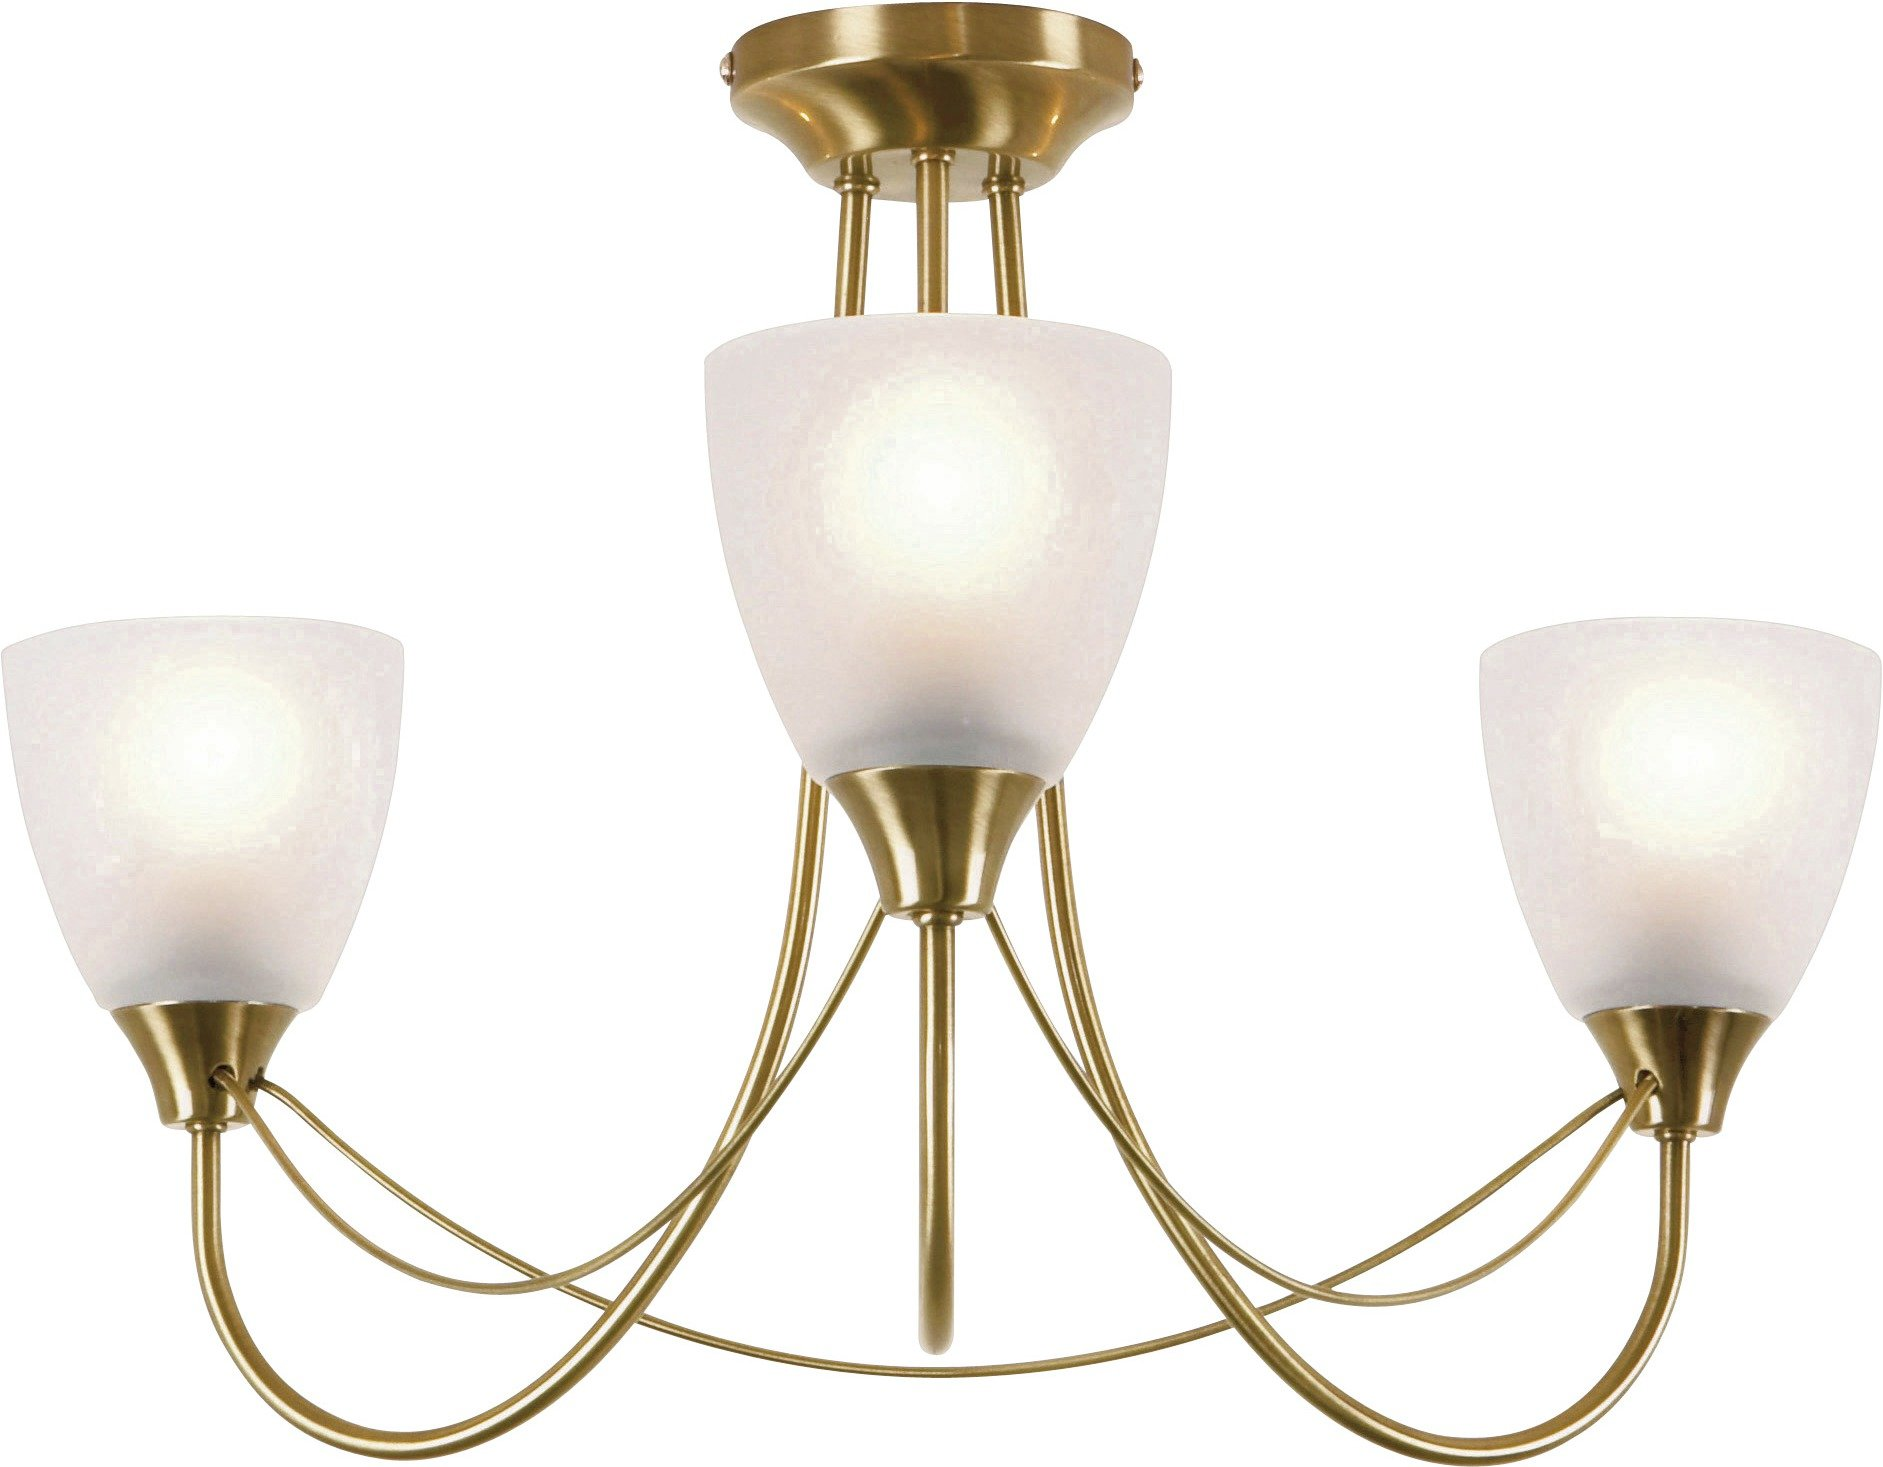 home-symphony-3-light-ceiling-fitting-antique-brass